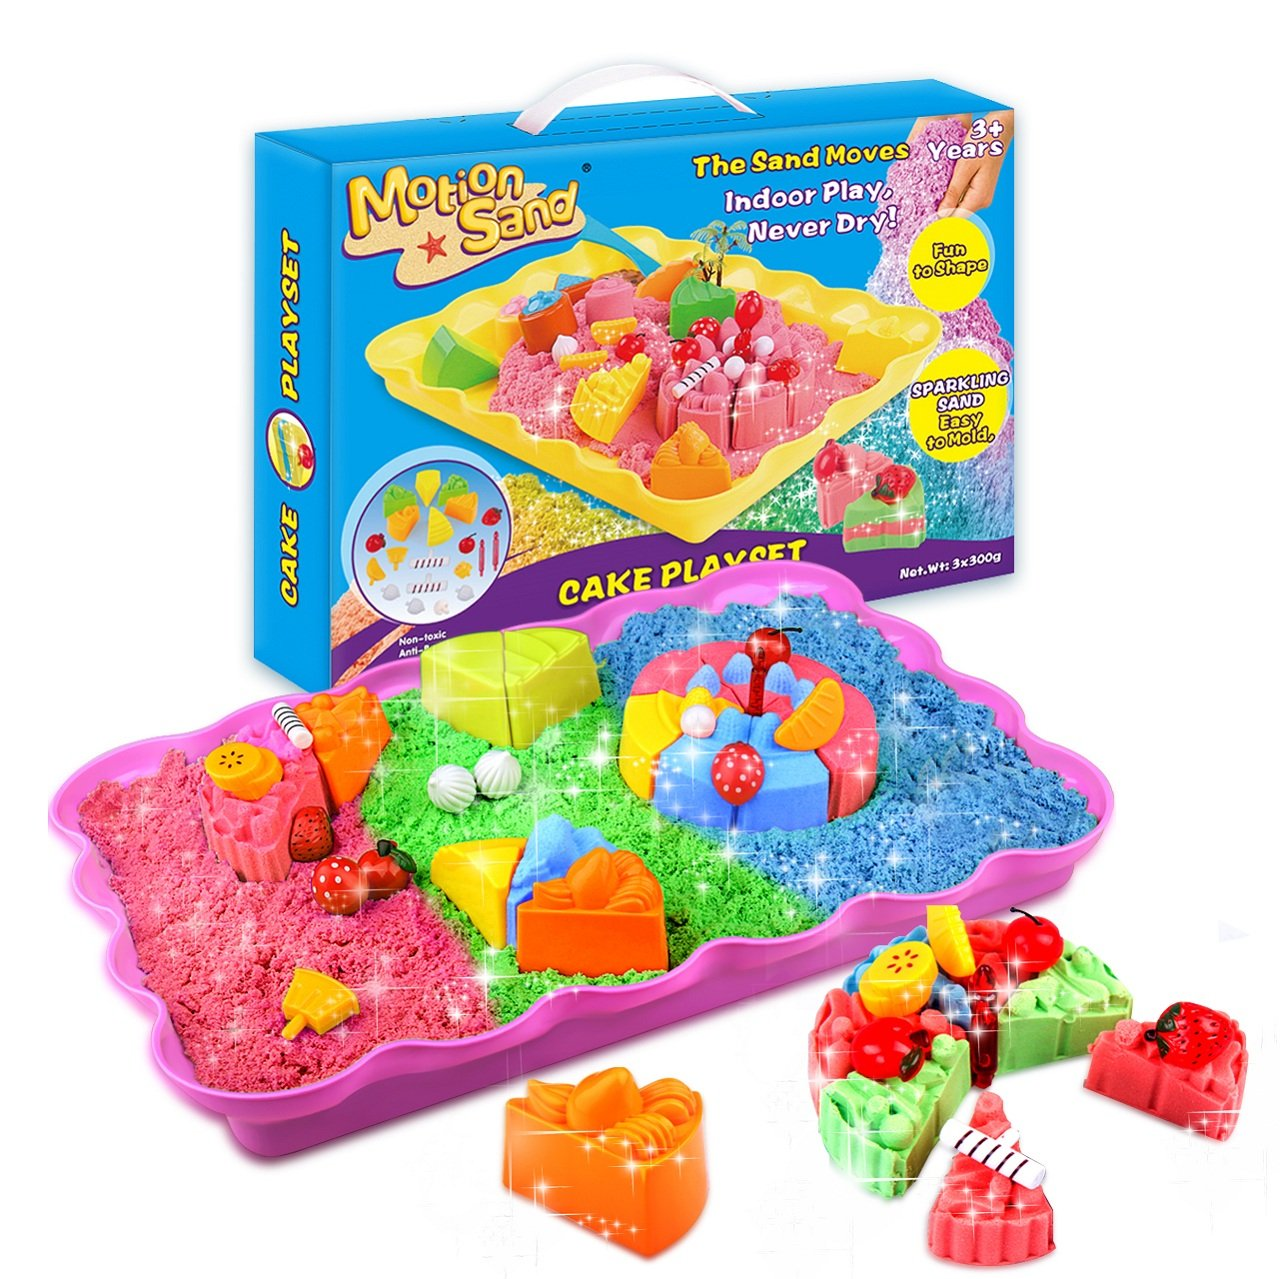 Motion Sand, 2LBS Shimmering Play Sand for Kids (Include 3 Colors), Cake Playset Molds Kit, Magic Play Sand with 20 Pcs Sand Molds and 1 Sand Tray by Motion Sand